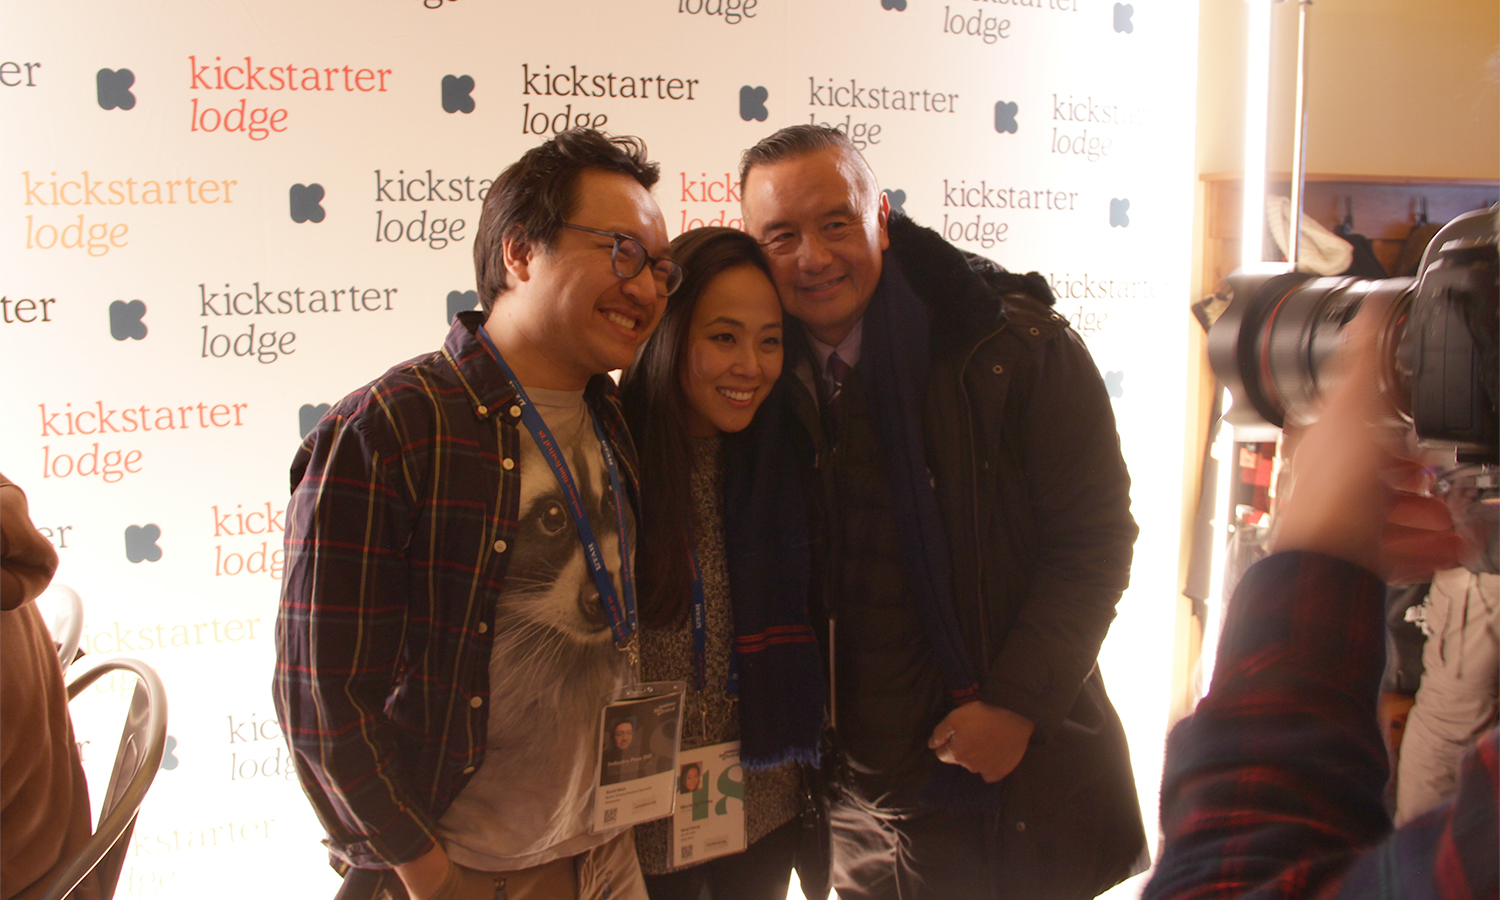 Kickstarter's David Ninh with Kollaboration's Christine Minji Chang and David Magdael. (Photo: Abraham Ferrer/Visual Communications Photographic Archive)